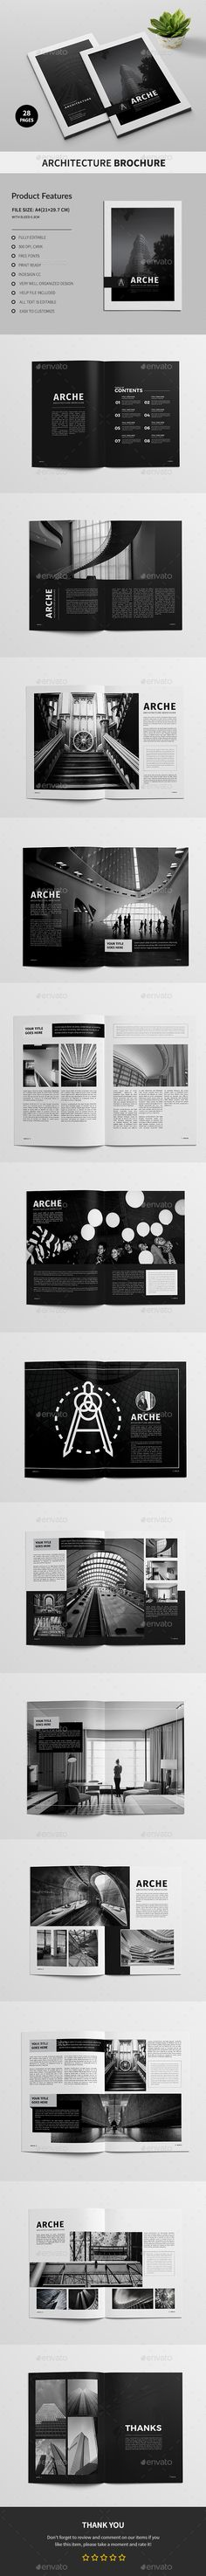 Architecture Brochure A4 — InDesign INDD #construction #cmyk • Download ➝ https://graphicriver.net/item/architecture-brochure-a4/20134022?ref=pxcr